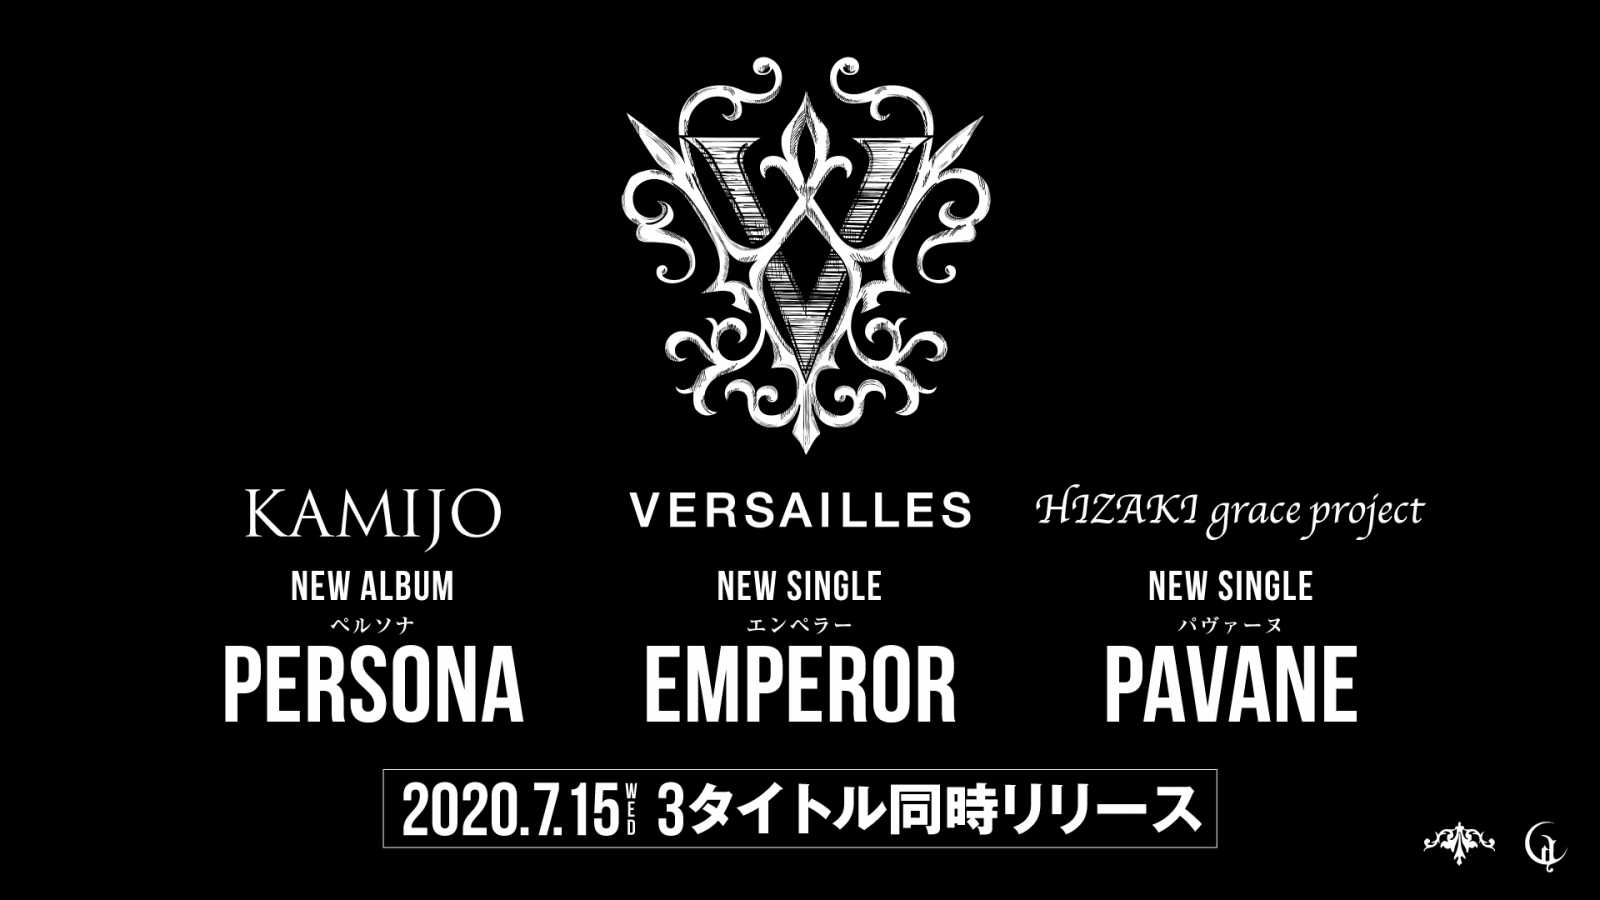 New Releases from VERSAILLES, KAMIJO and HIZAKI grace project © CHATEAU AGENCY CO., Ltd. All rights reserved.